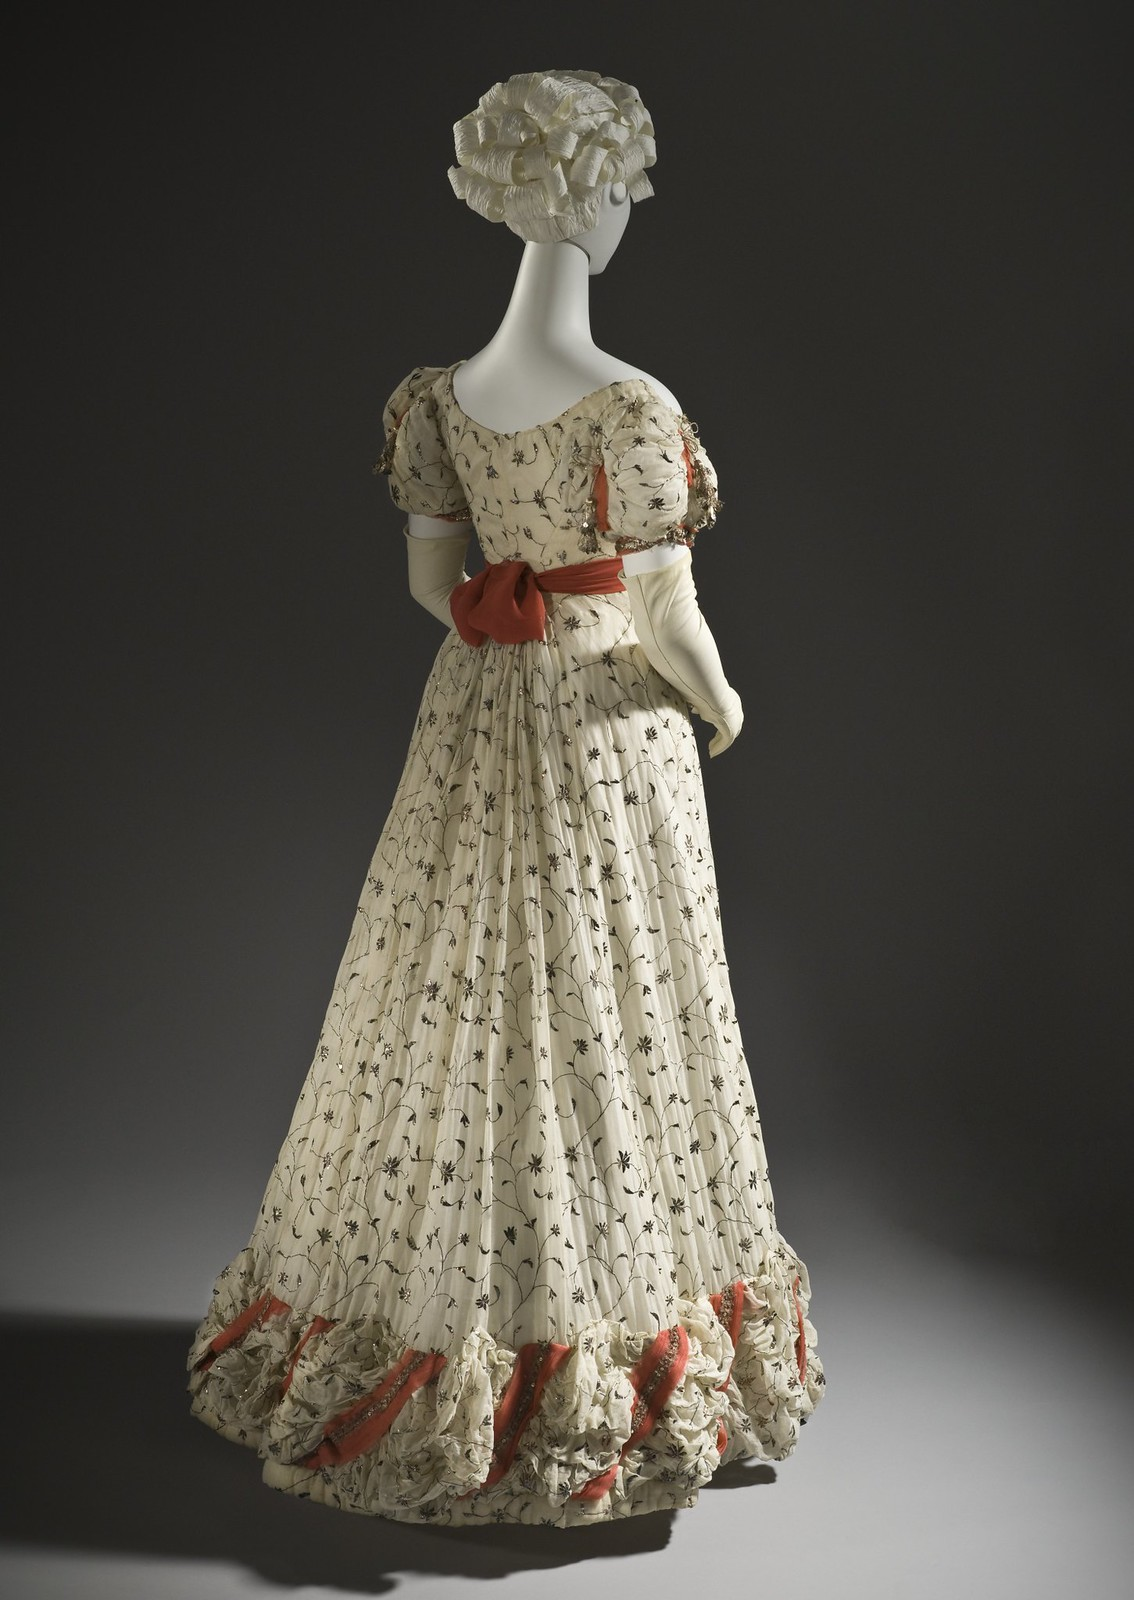 1820 Ball gown. British. Cotton plain weave with metallic thread embroidery and silk ribbons with metallic passementerie and tassels. LACMA